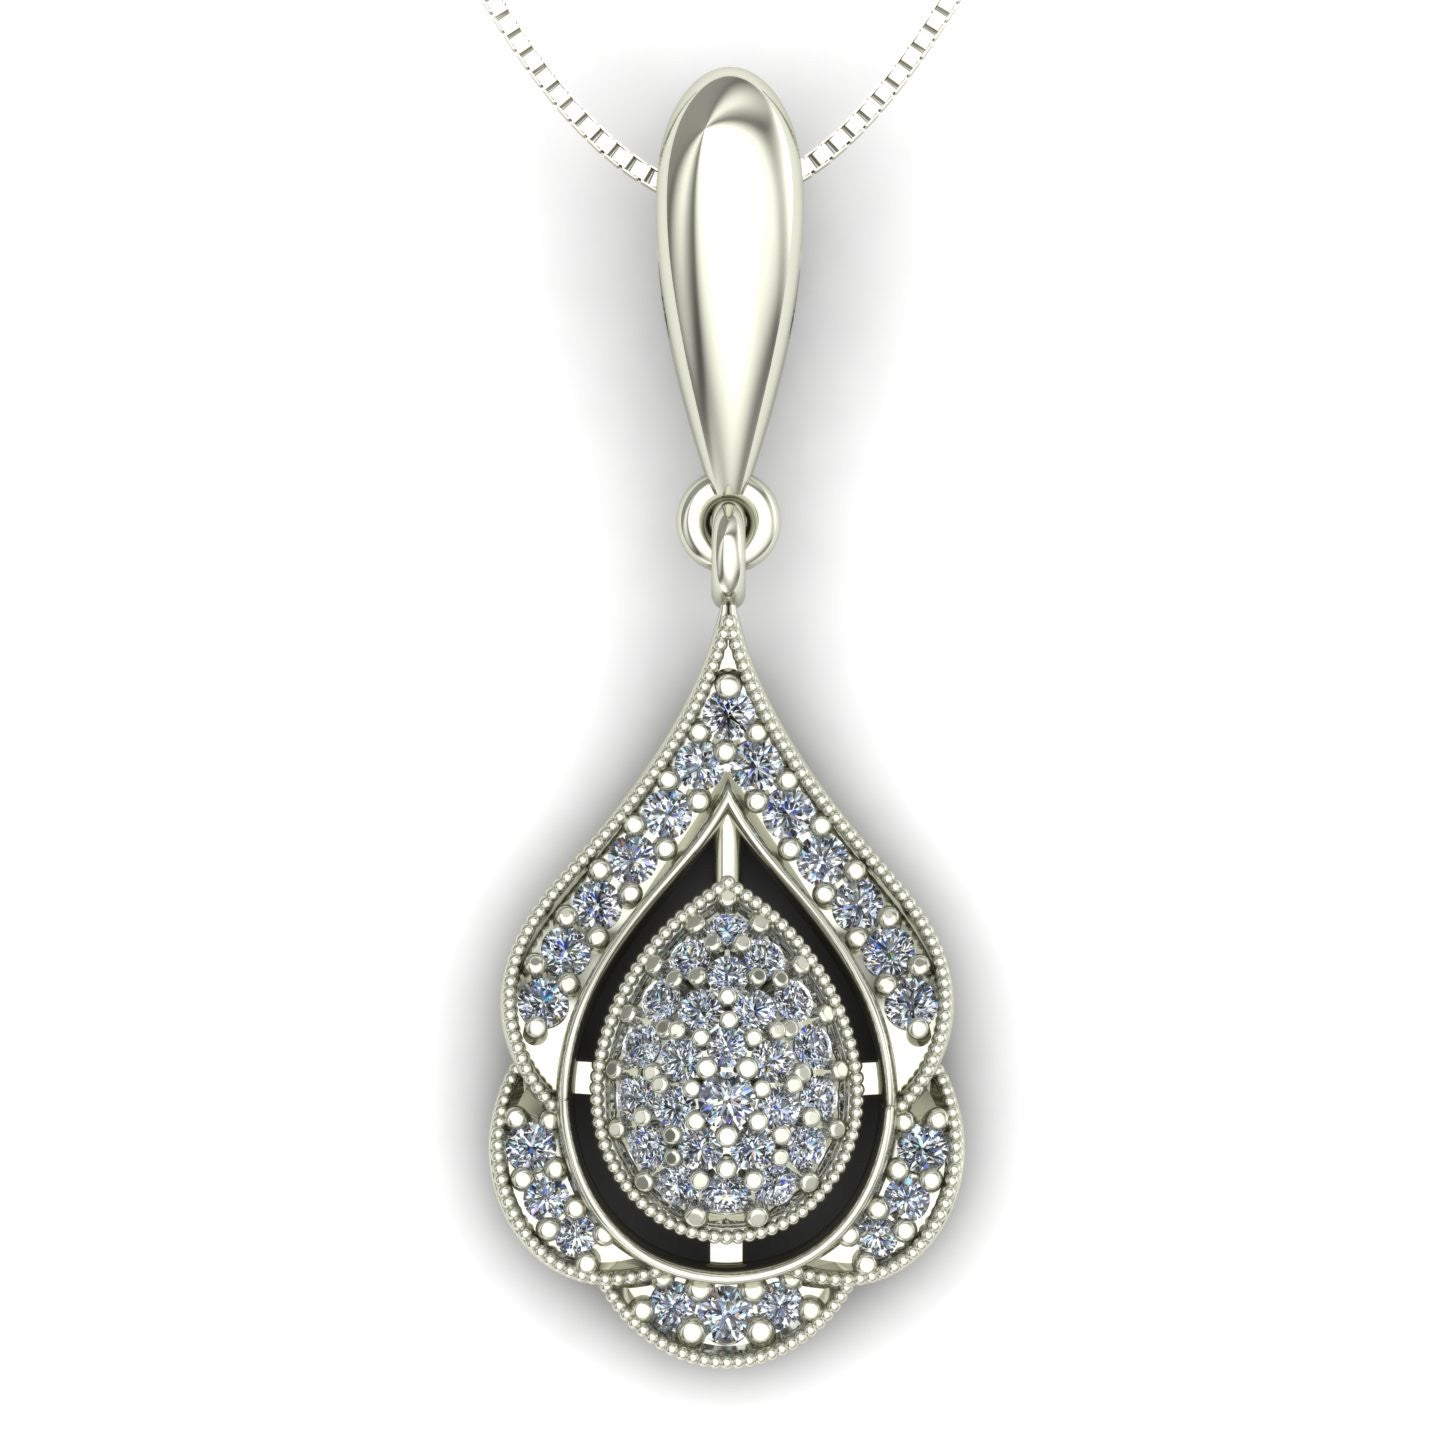 Pavé diamond pendant in 14k white gold